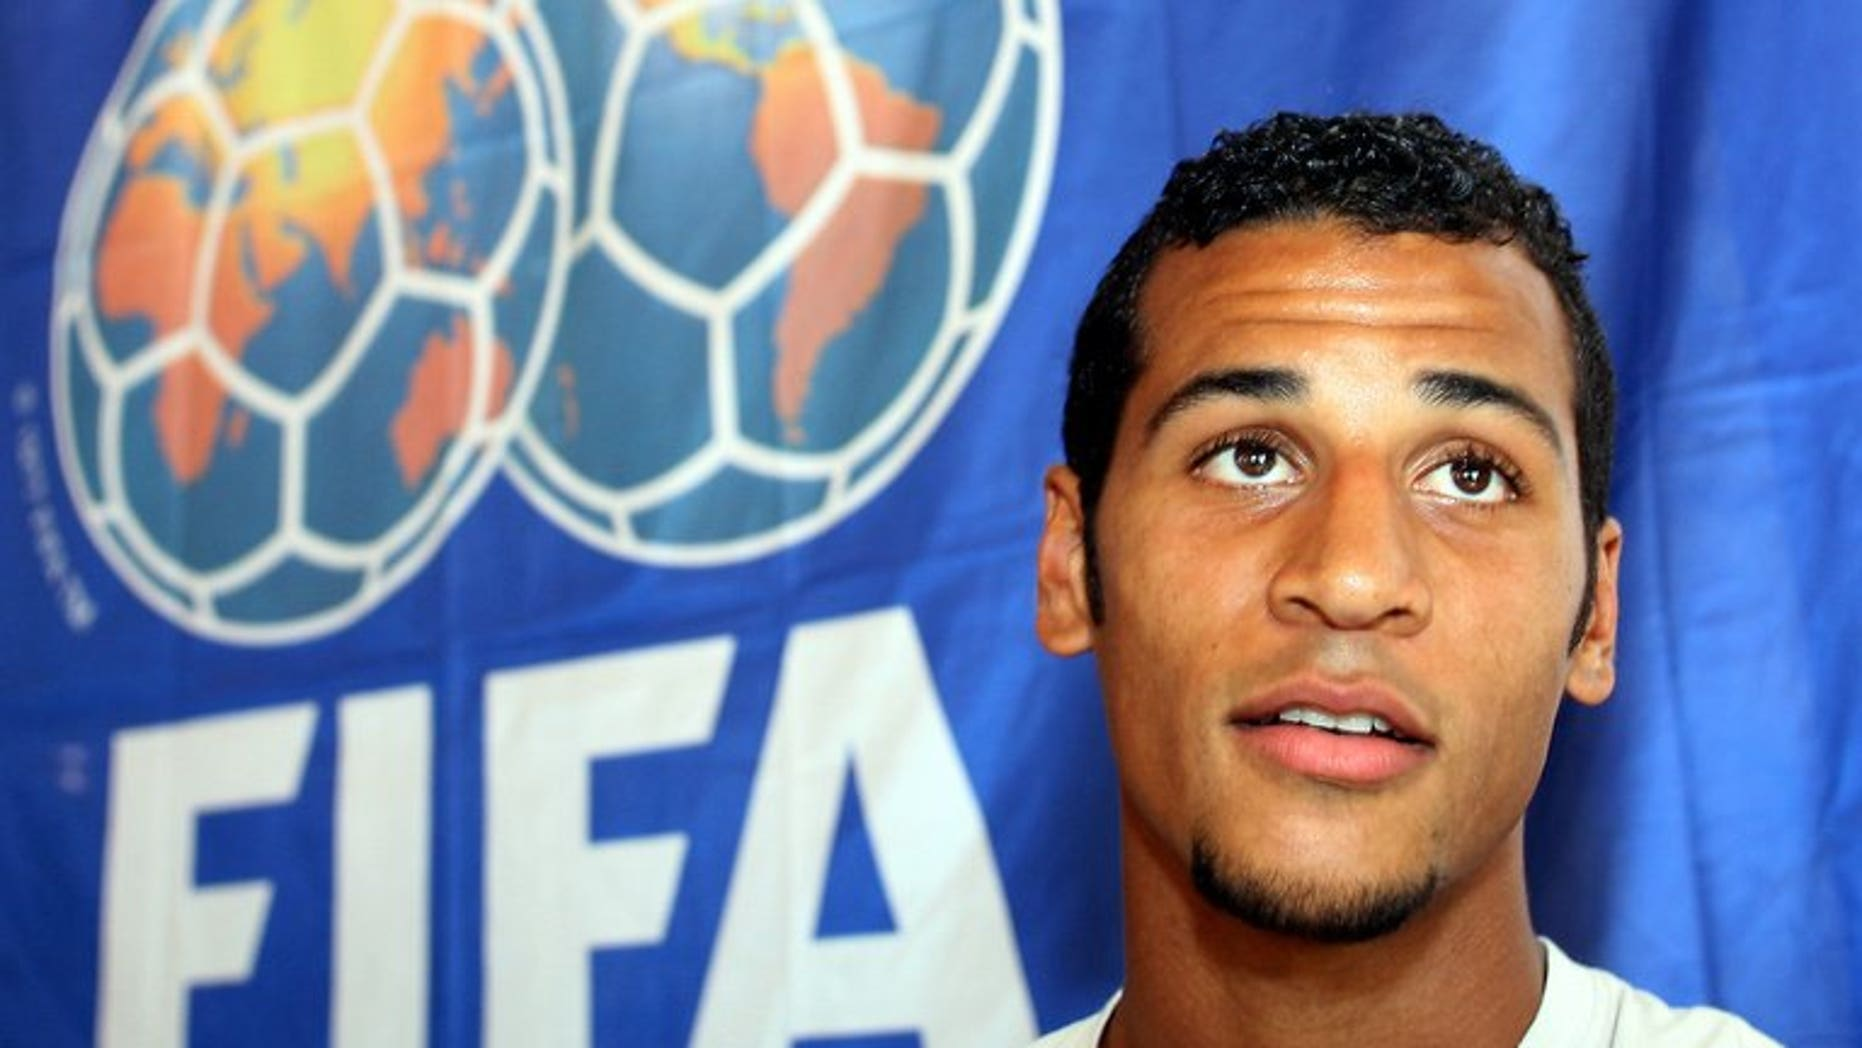 A picture taken on June 17, 2006 shows Togolese midfielder Alaixys Romao during a press conference at the media centre in Wagen Im Allg??u, Germany. Togo have joined Ethiopia in admitting that they fielded a suspended player in a 2014 World Cup Africa zone qualifier.